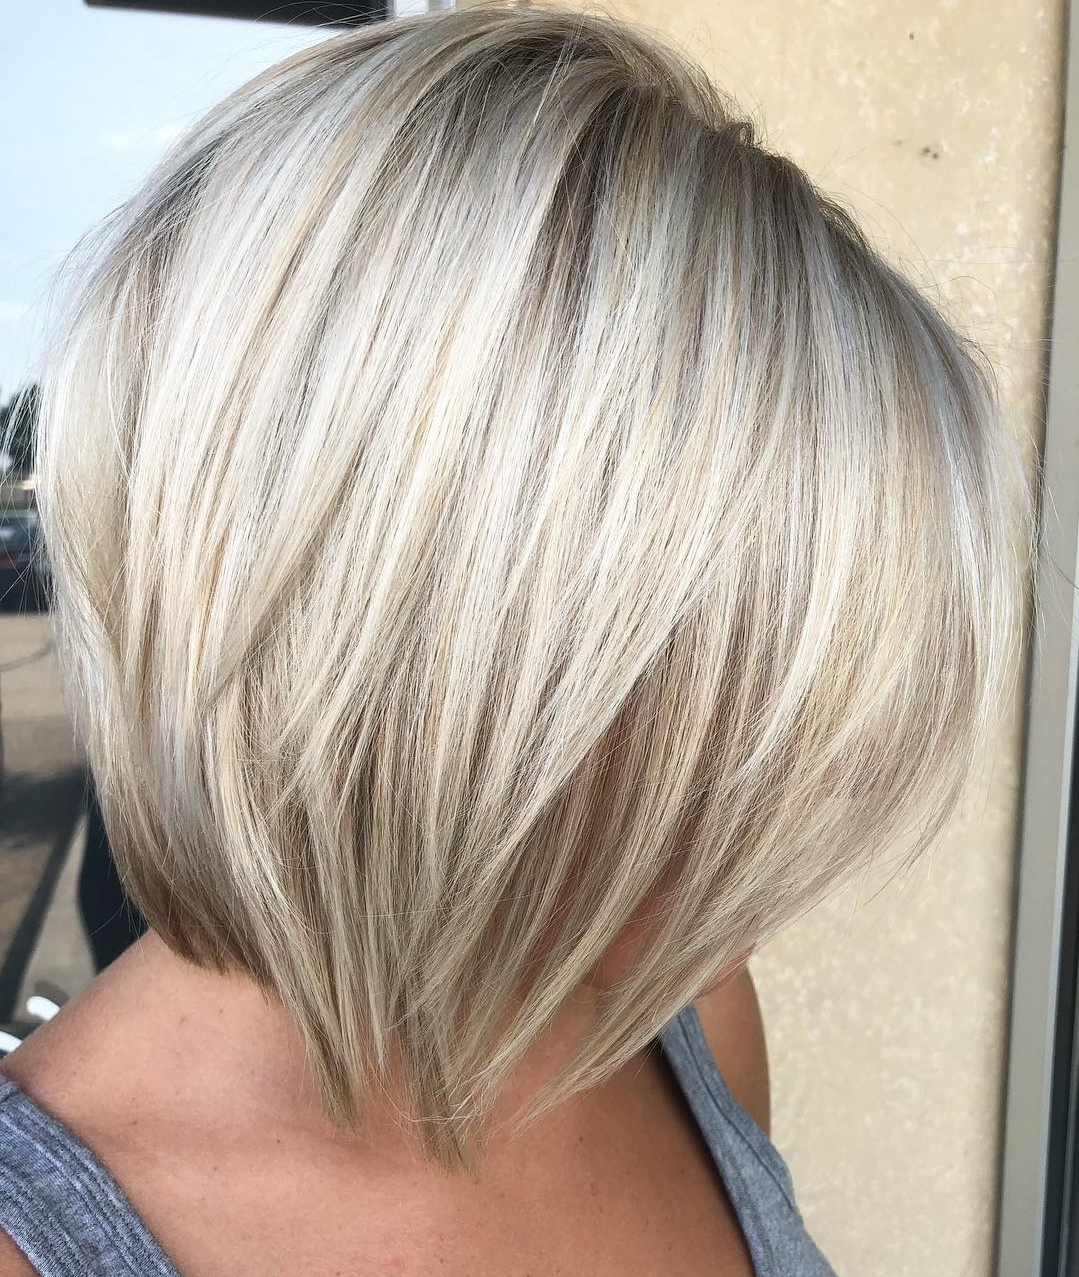 21 Most Amazing Bob Haircuts For Thin Hair – Haircuts In Recent Short Cappuccino Bob Hairstyles (View 2 of 20)